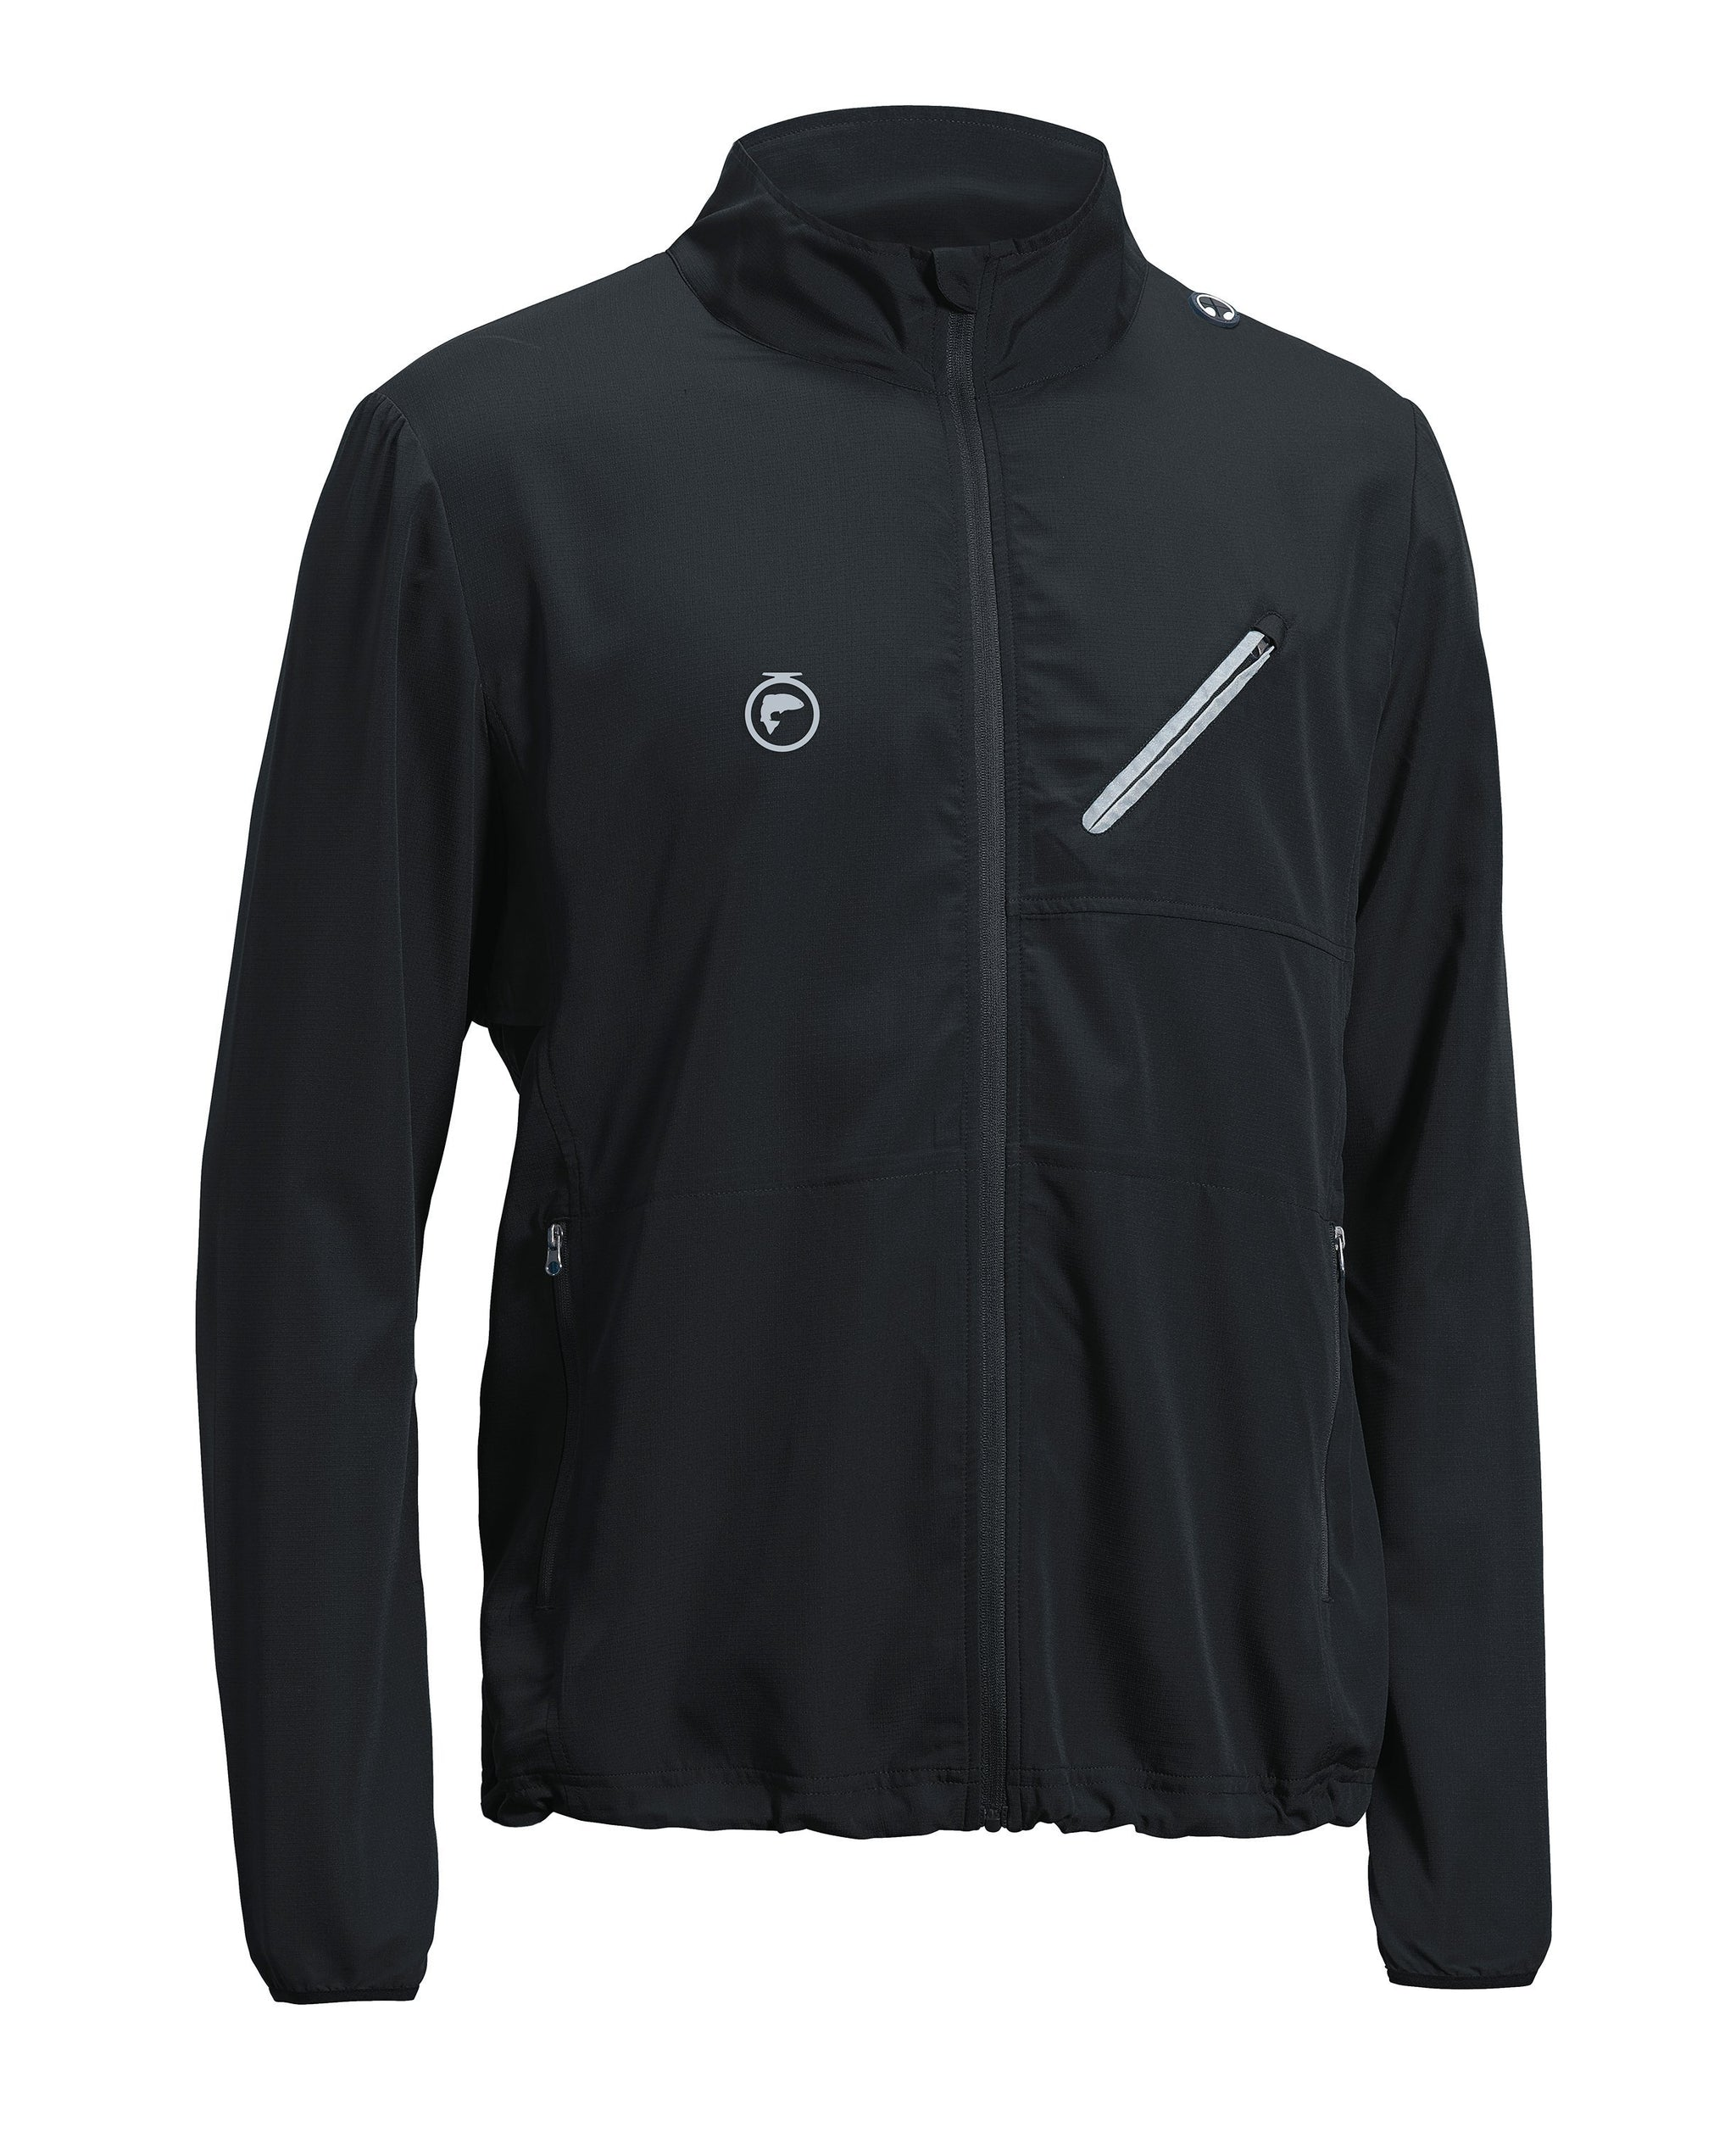 Xtreme Performance Windbreaker Jacket